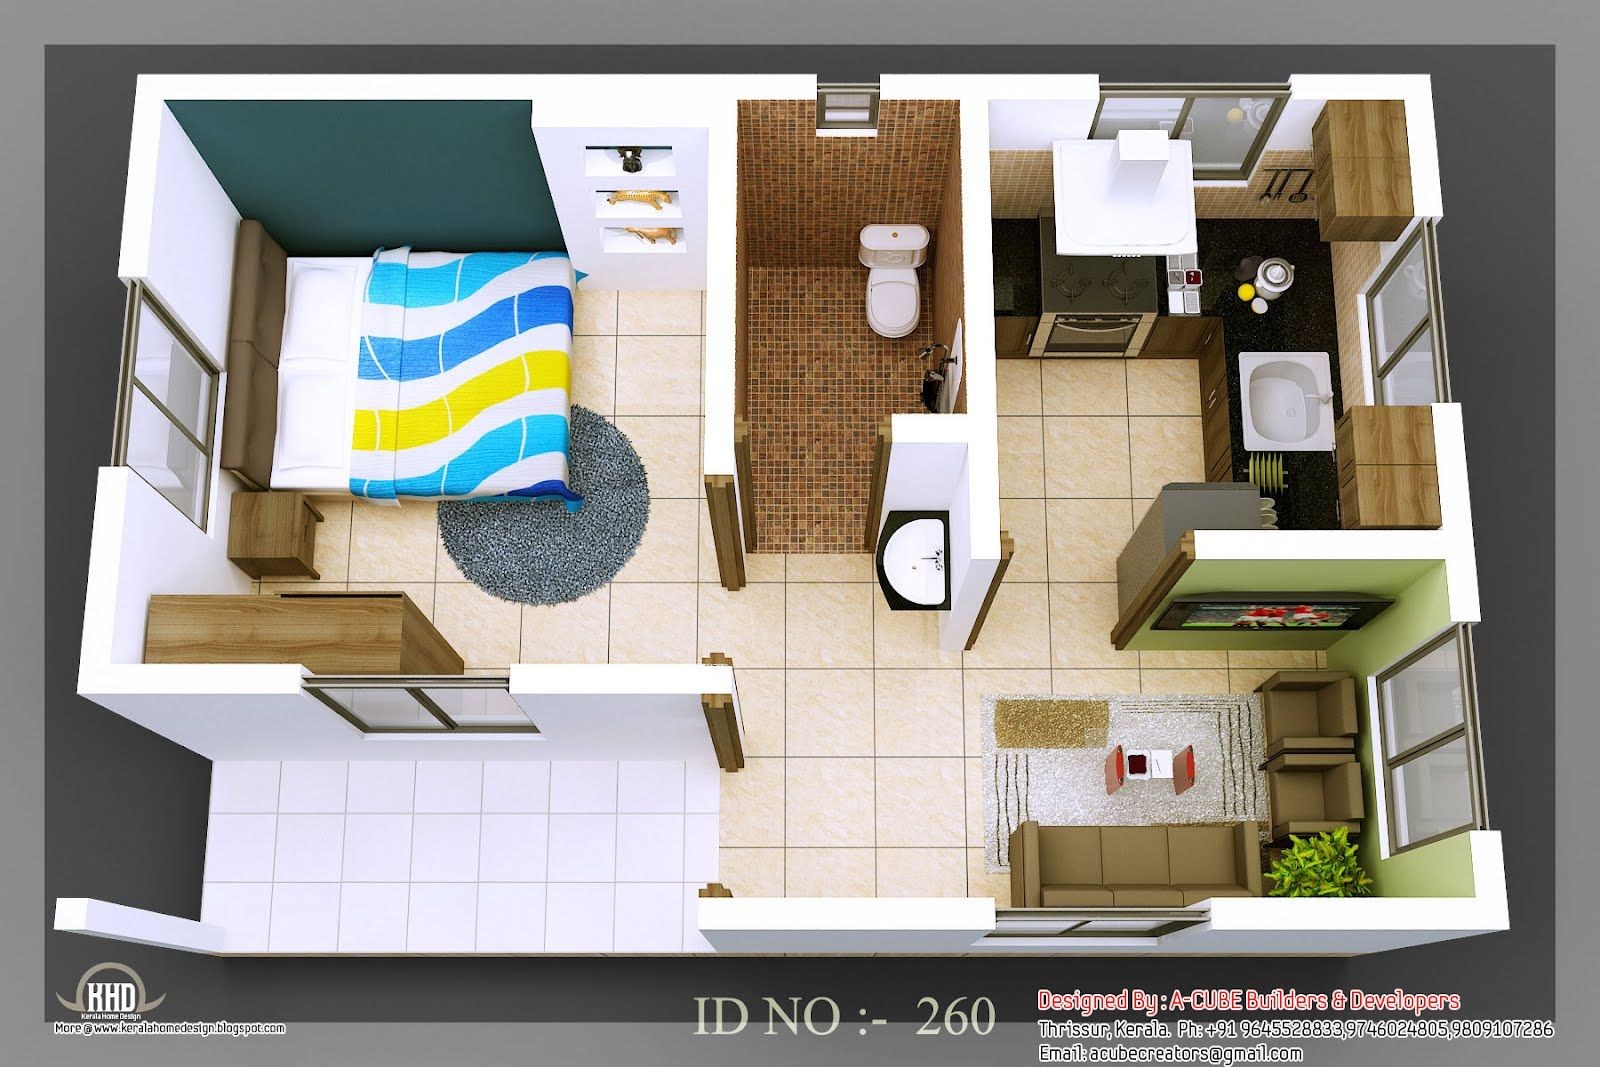 tiny homes 3d isometric views of small house plans indian home decor - Small Home Plans